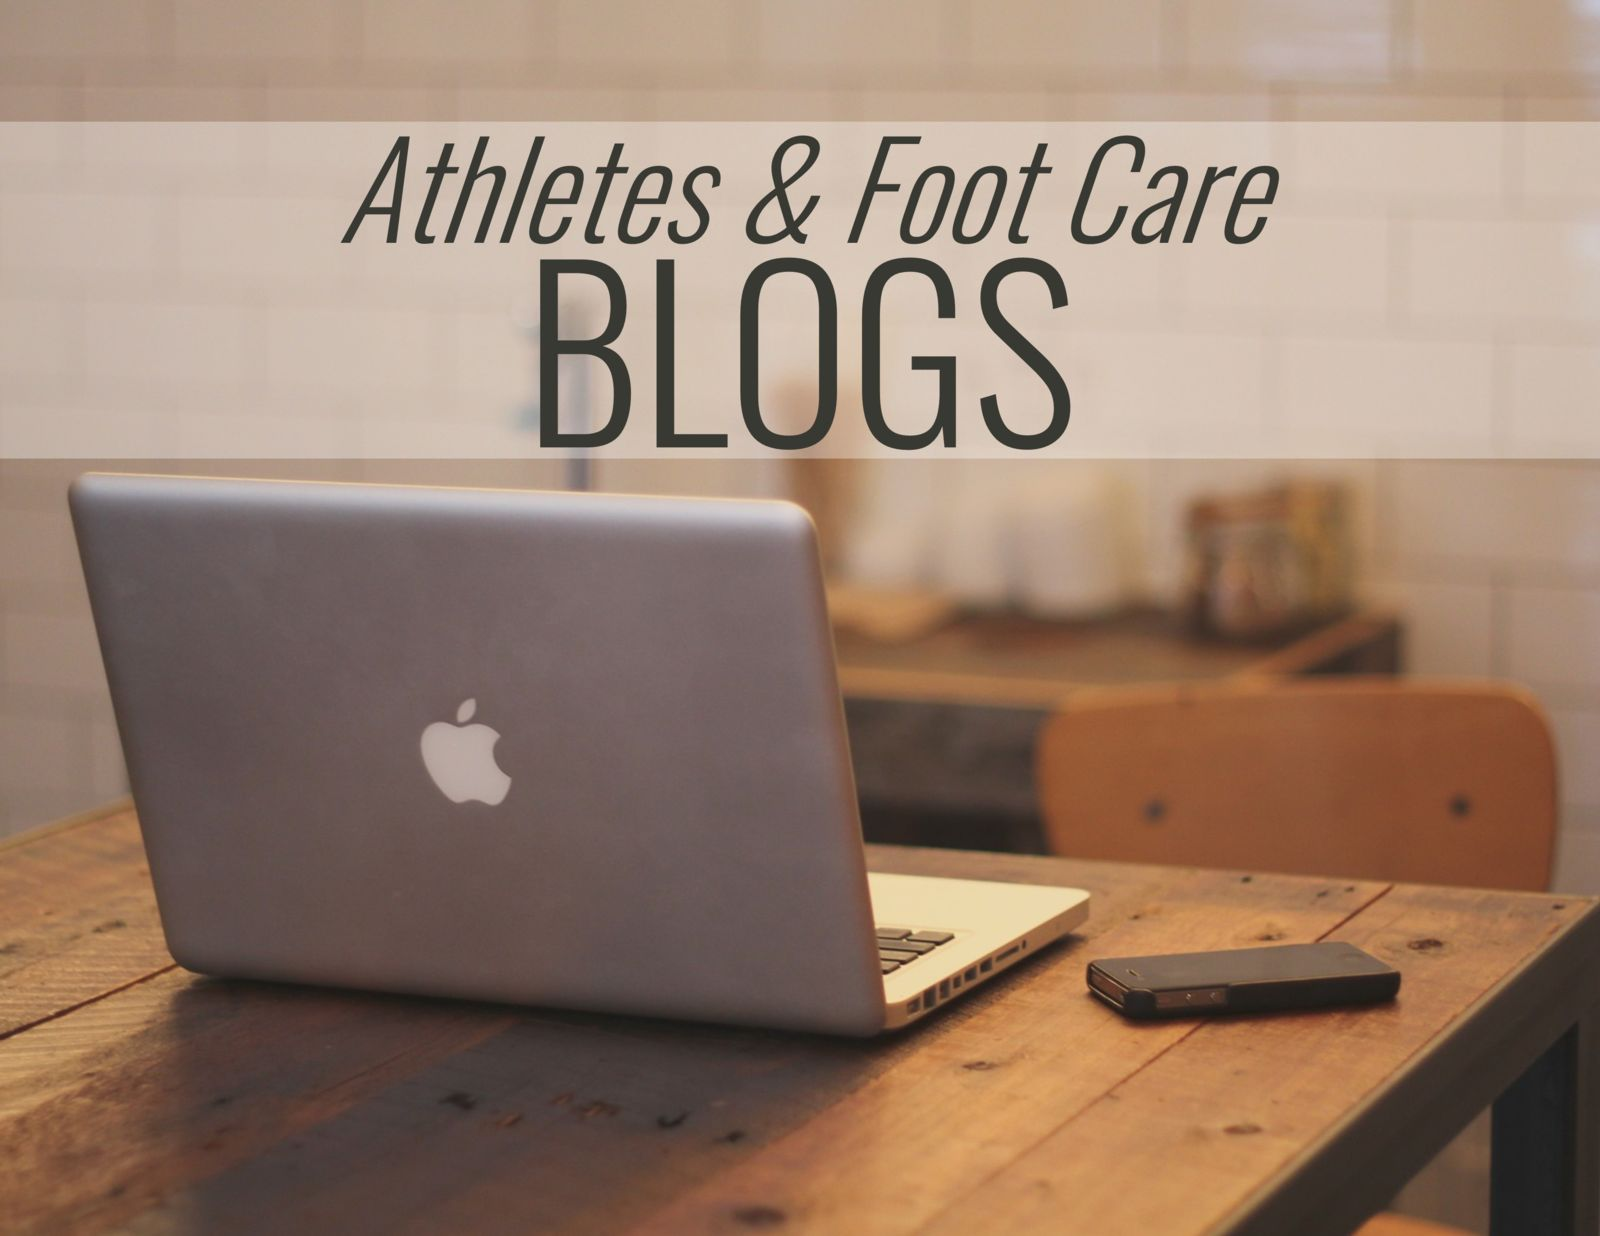 computer on a desk with the words: Athletes & Foot Care Blogs